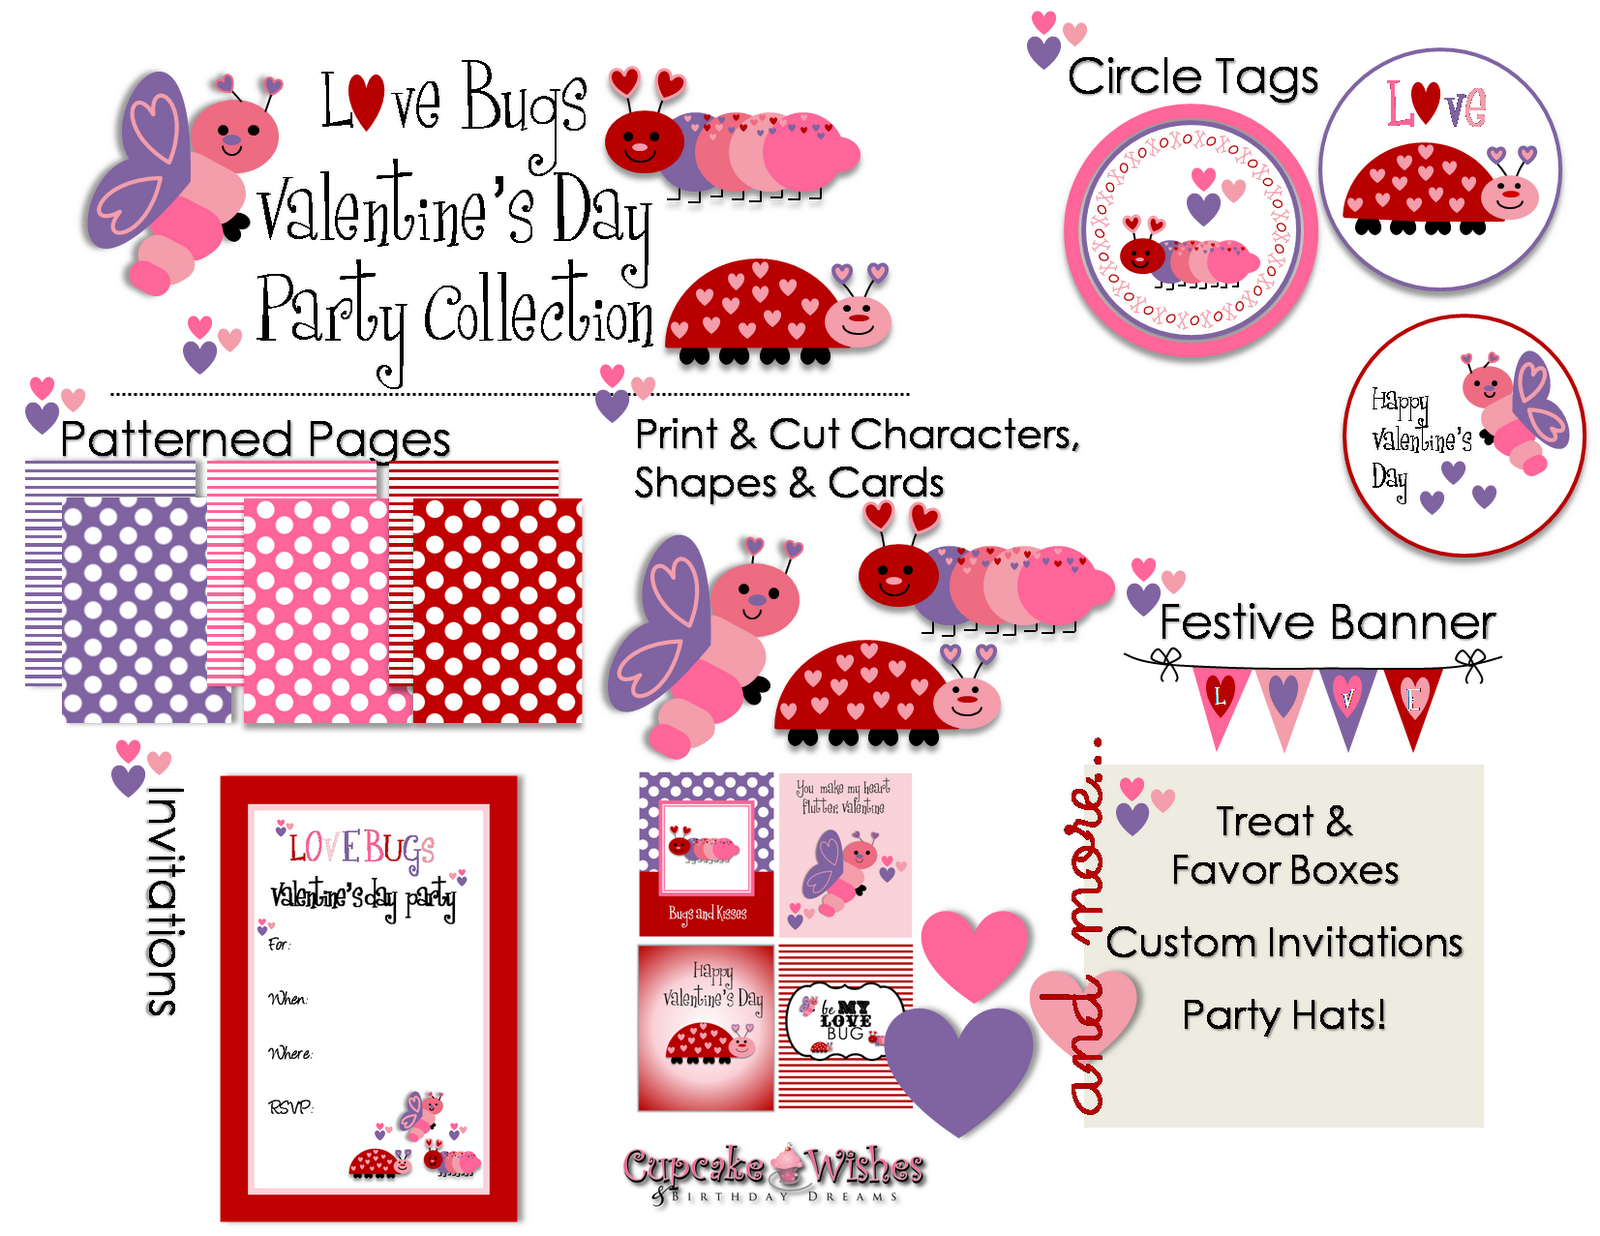 Cupcake Wishes Amp Birthday Dreams Love Bugs Party Printables On Etsy